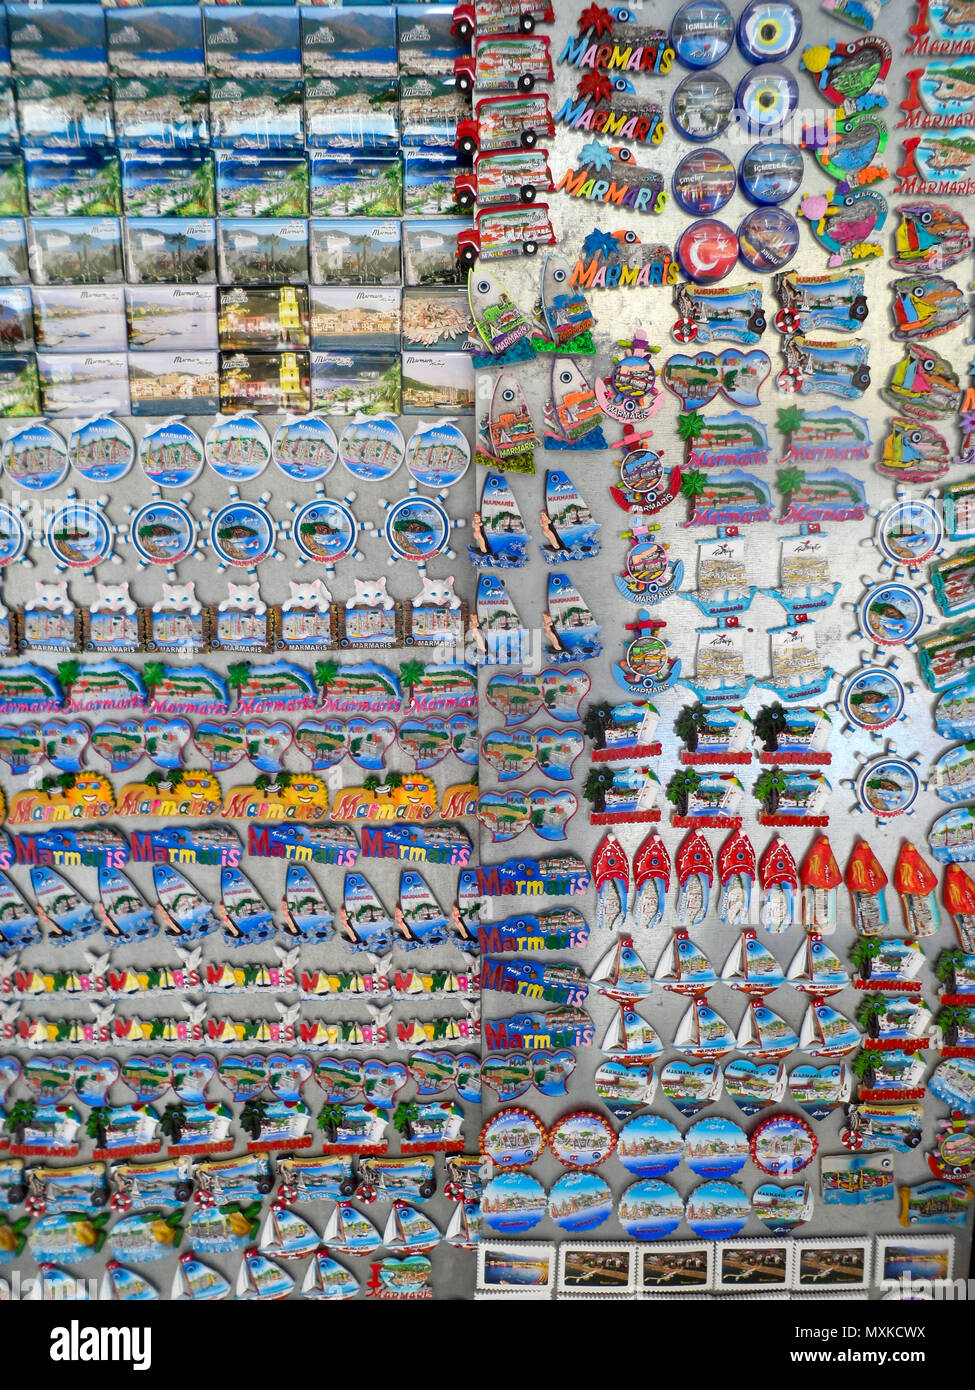 A tourist shop display of fridge magnets for sale in Marmaris, Mugla province, Turkey Stock Photo